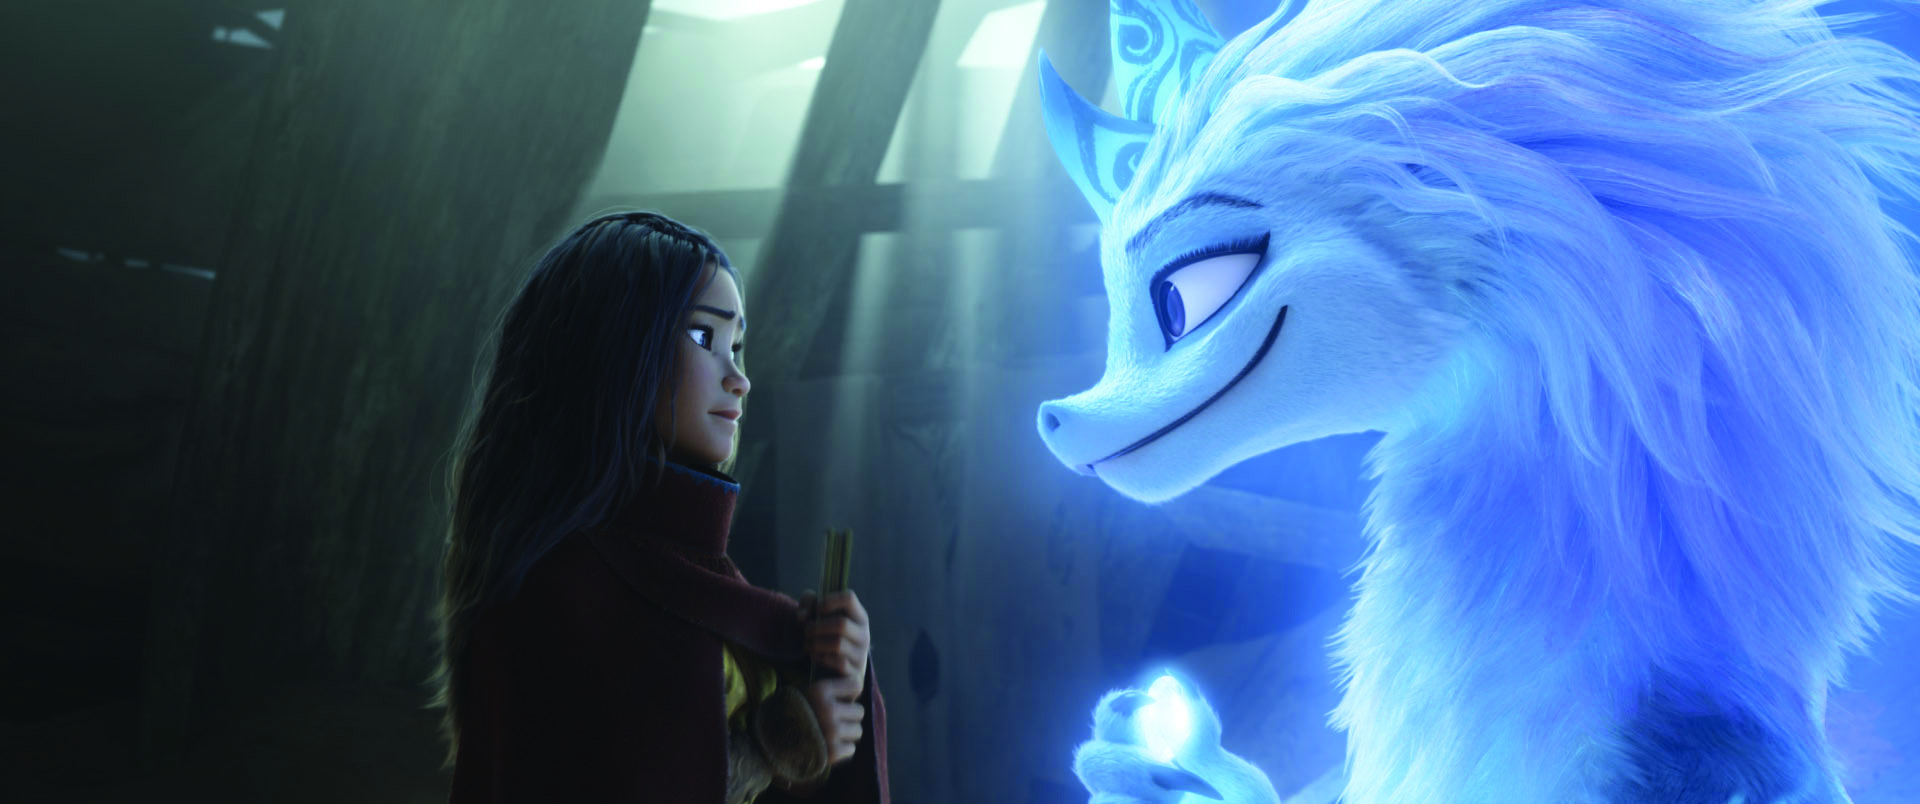 """Raya seeks the help of the legendary dragon, Sisu. Seeing what's become of Kumandra, Sisu commits to helping Raya fulfill her mission in reuniting the lands. Featuring Kelly Marie Tran as the voice of Raya and Awkwafina as the voice of Sisu, Walt Disney Animation Studios' """"Raya and the Last Dragon"""" will be in theaters and on Disney+ with Premier Access on March 5, 2021. © 2021 Disney. All Rights Reserved."""